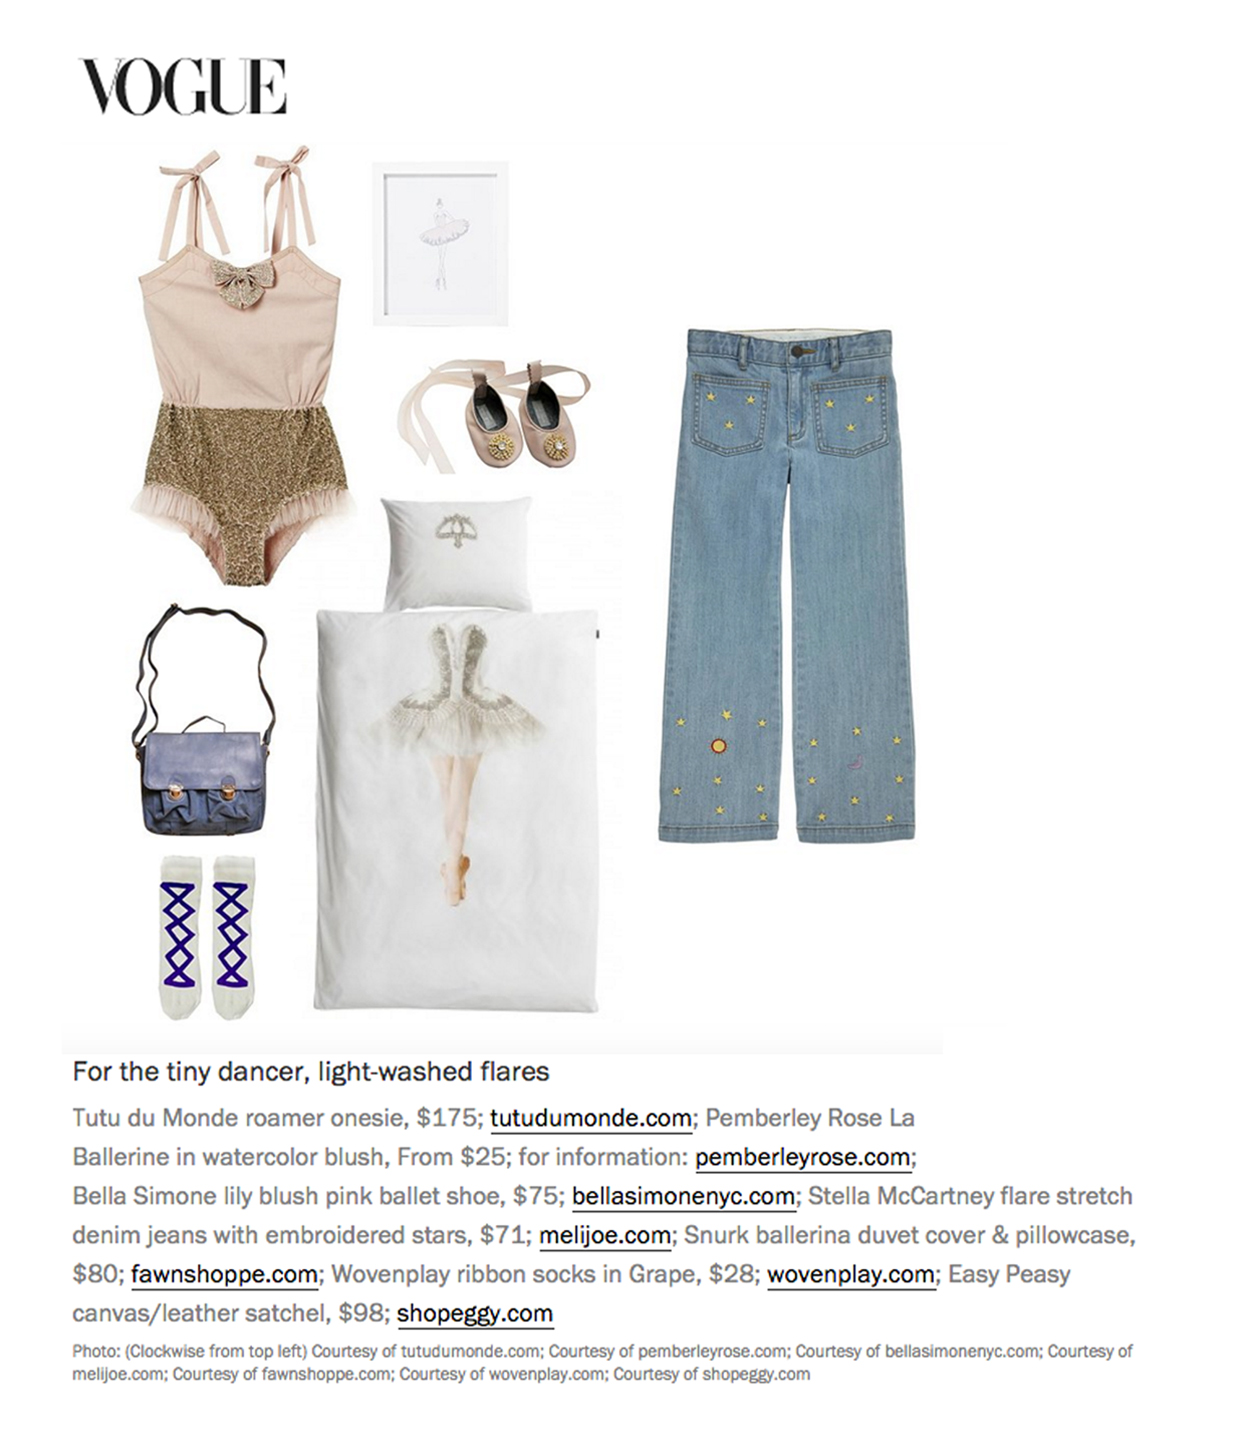 Wovenplay Ribbon Socks Grape featured in Vogue's Back to School Guide!    Here is the link to the full piece!